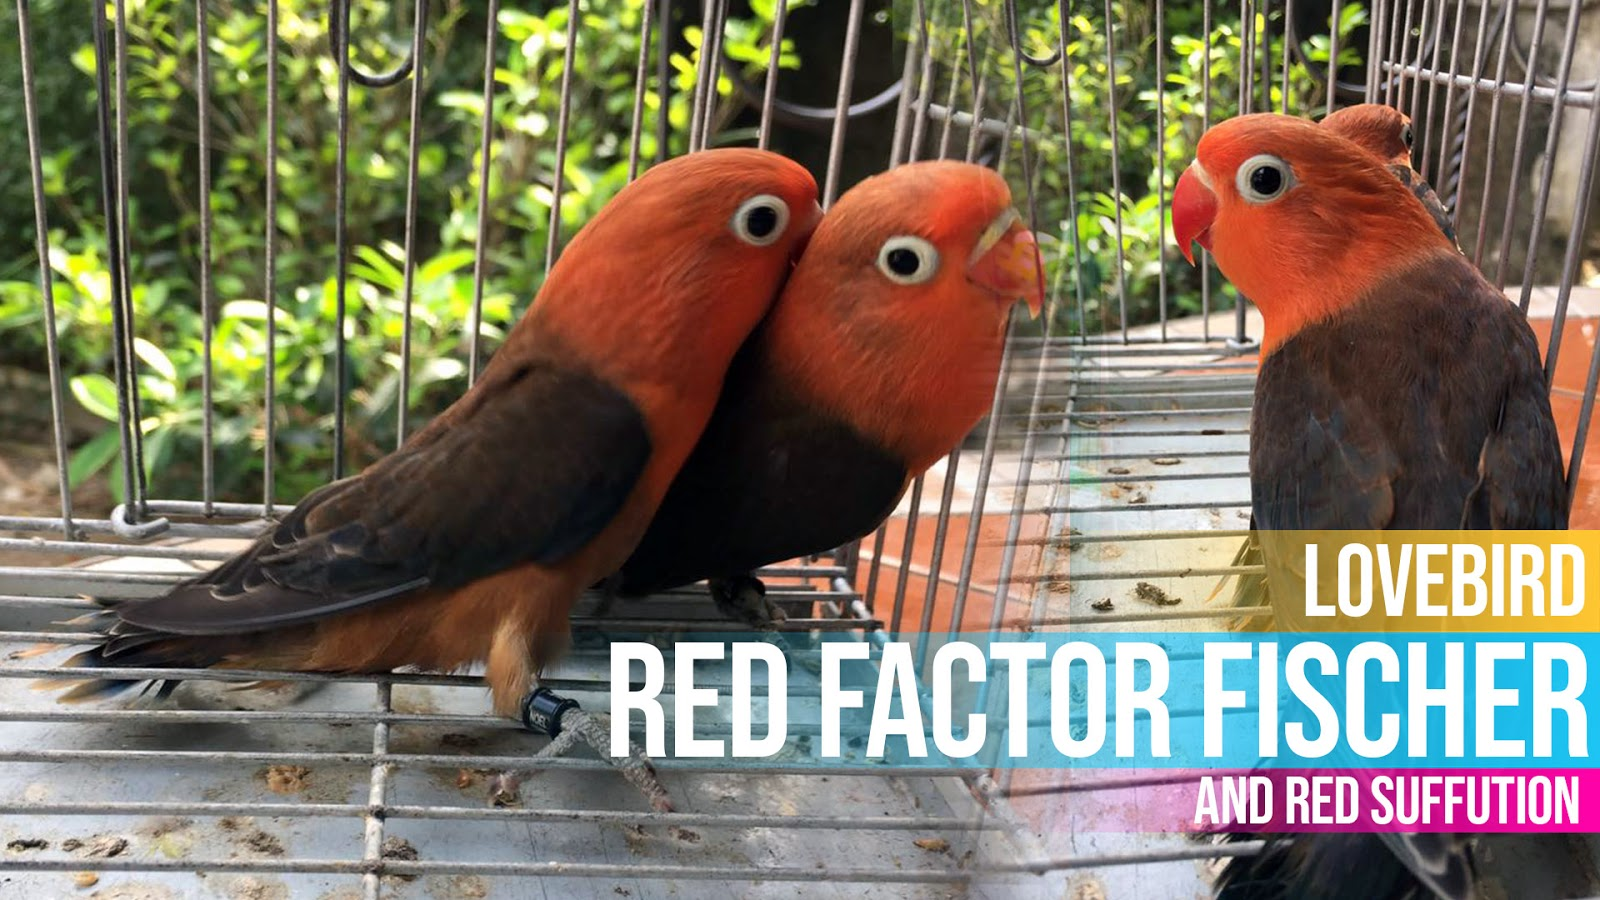 Lovebird Red Factor Fischer Differs From Red Suffution Lovebird Breeding Tips And Mutations Guide